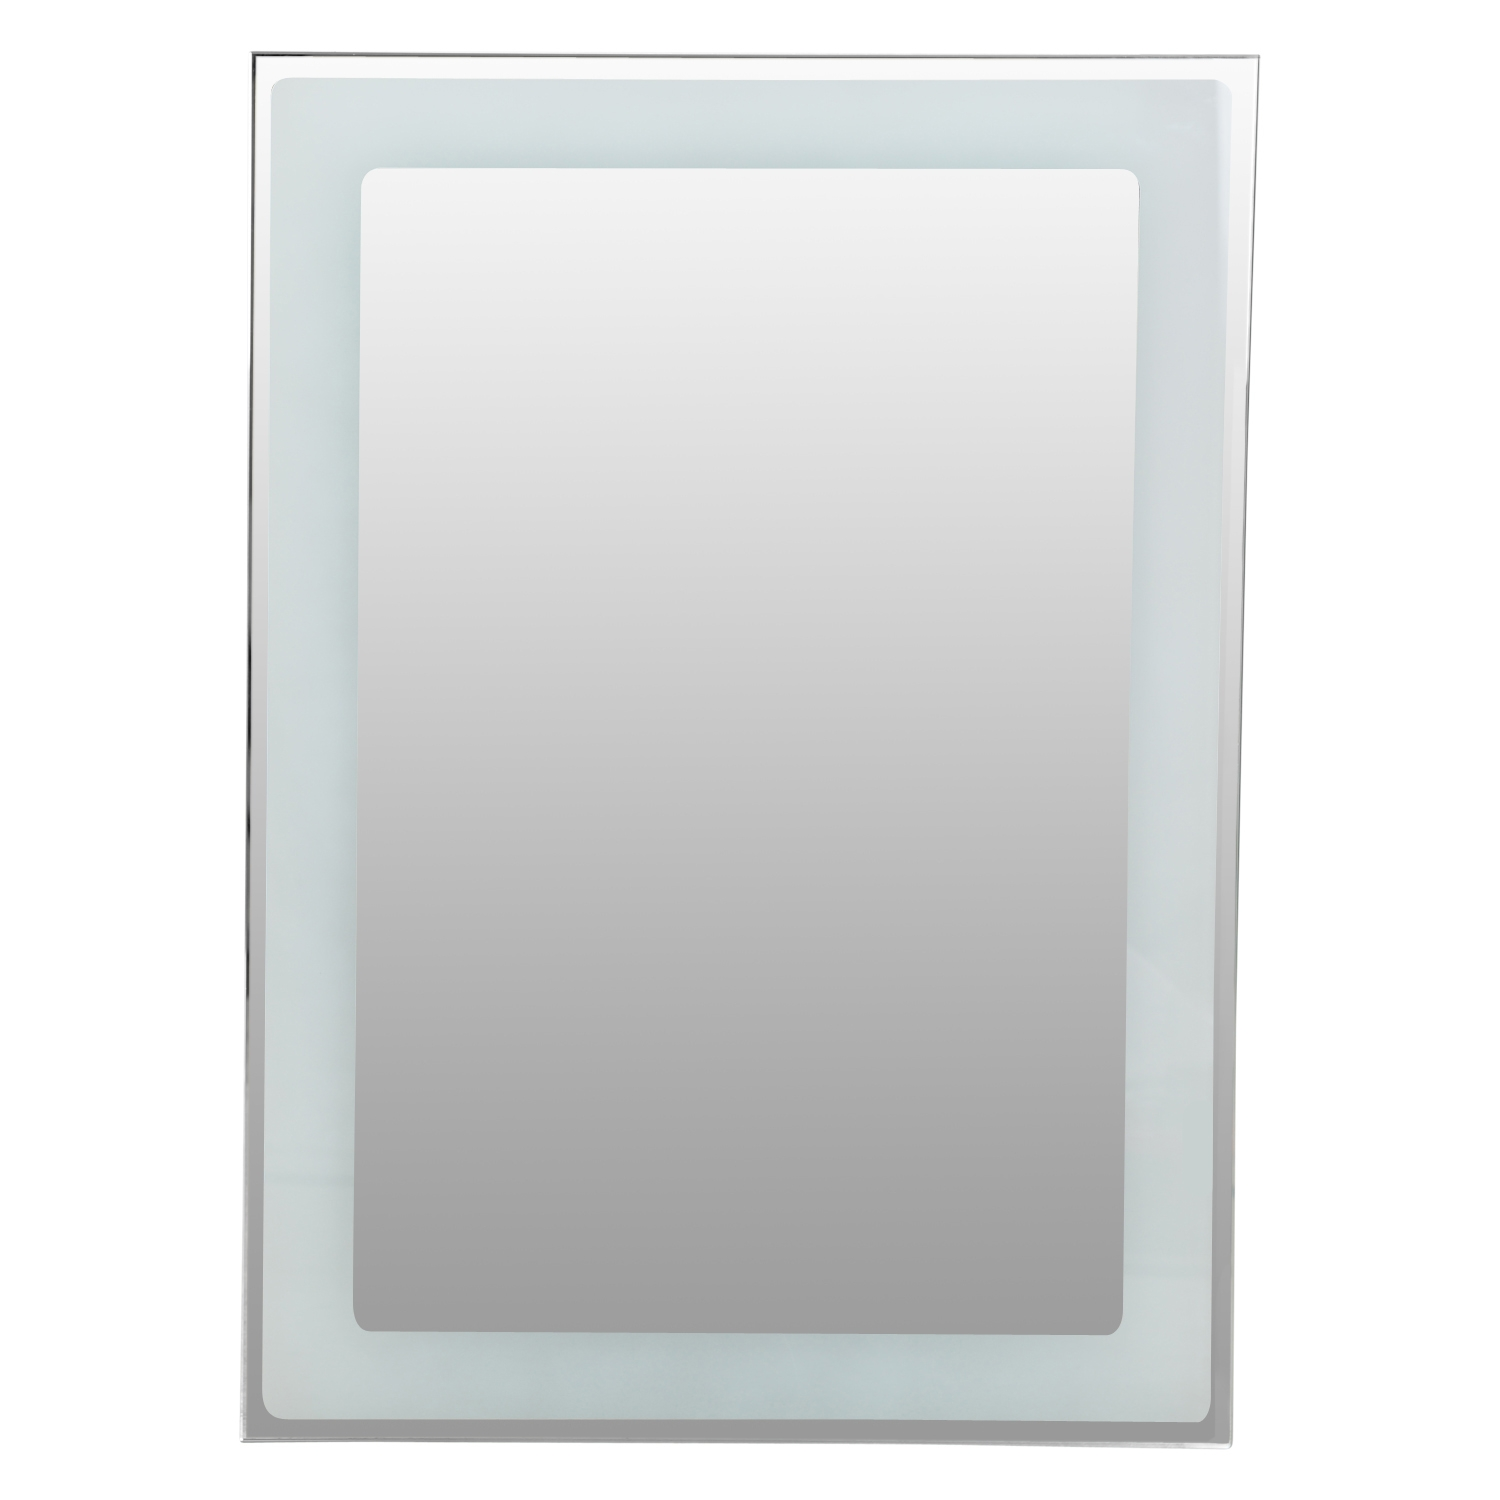 Image of Casa LED Mirror, Silver